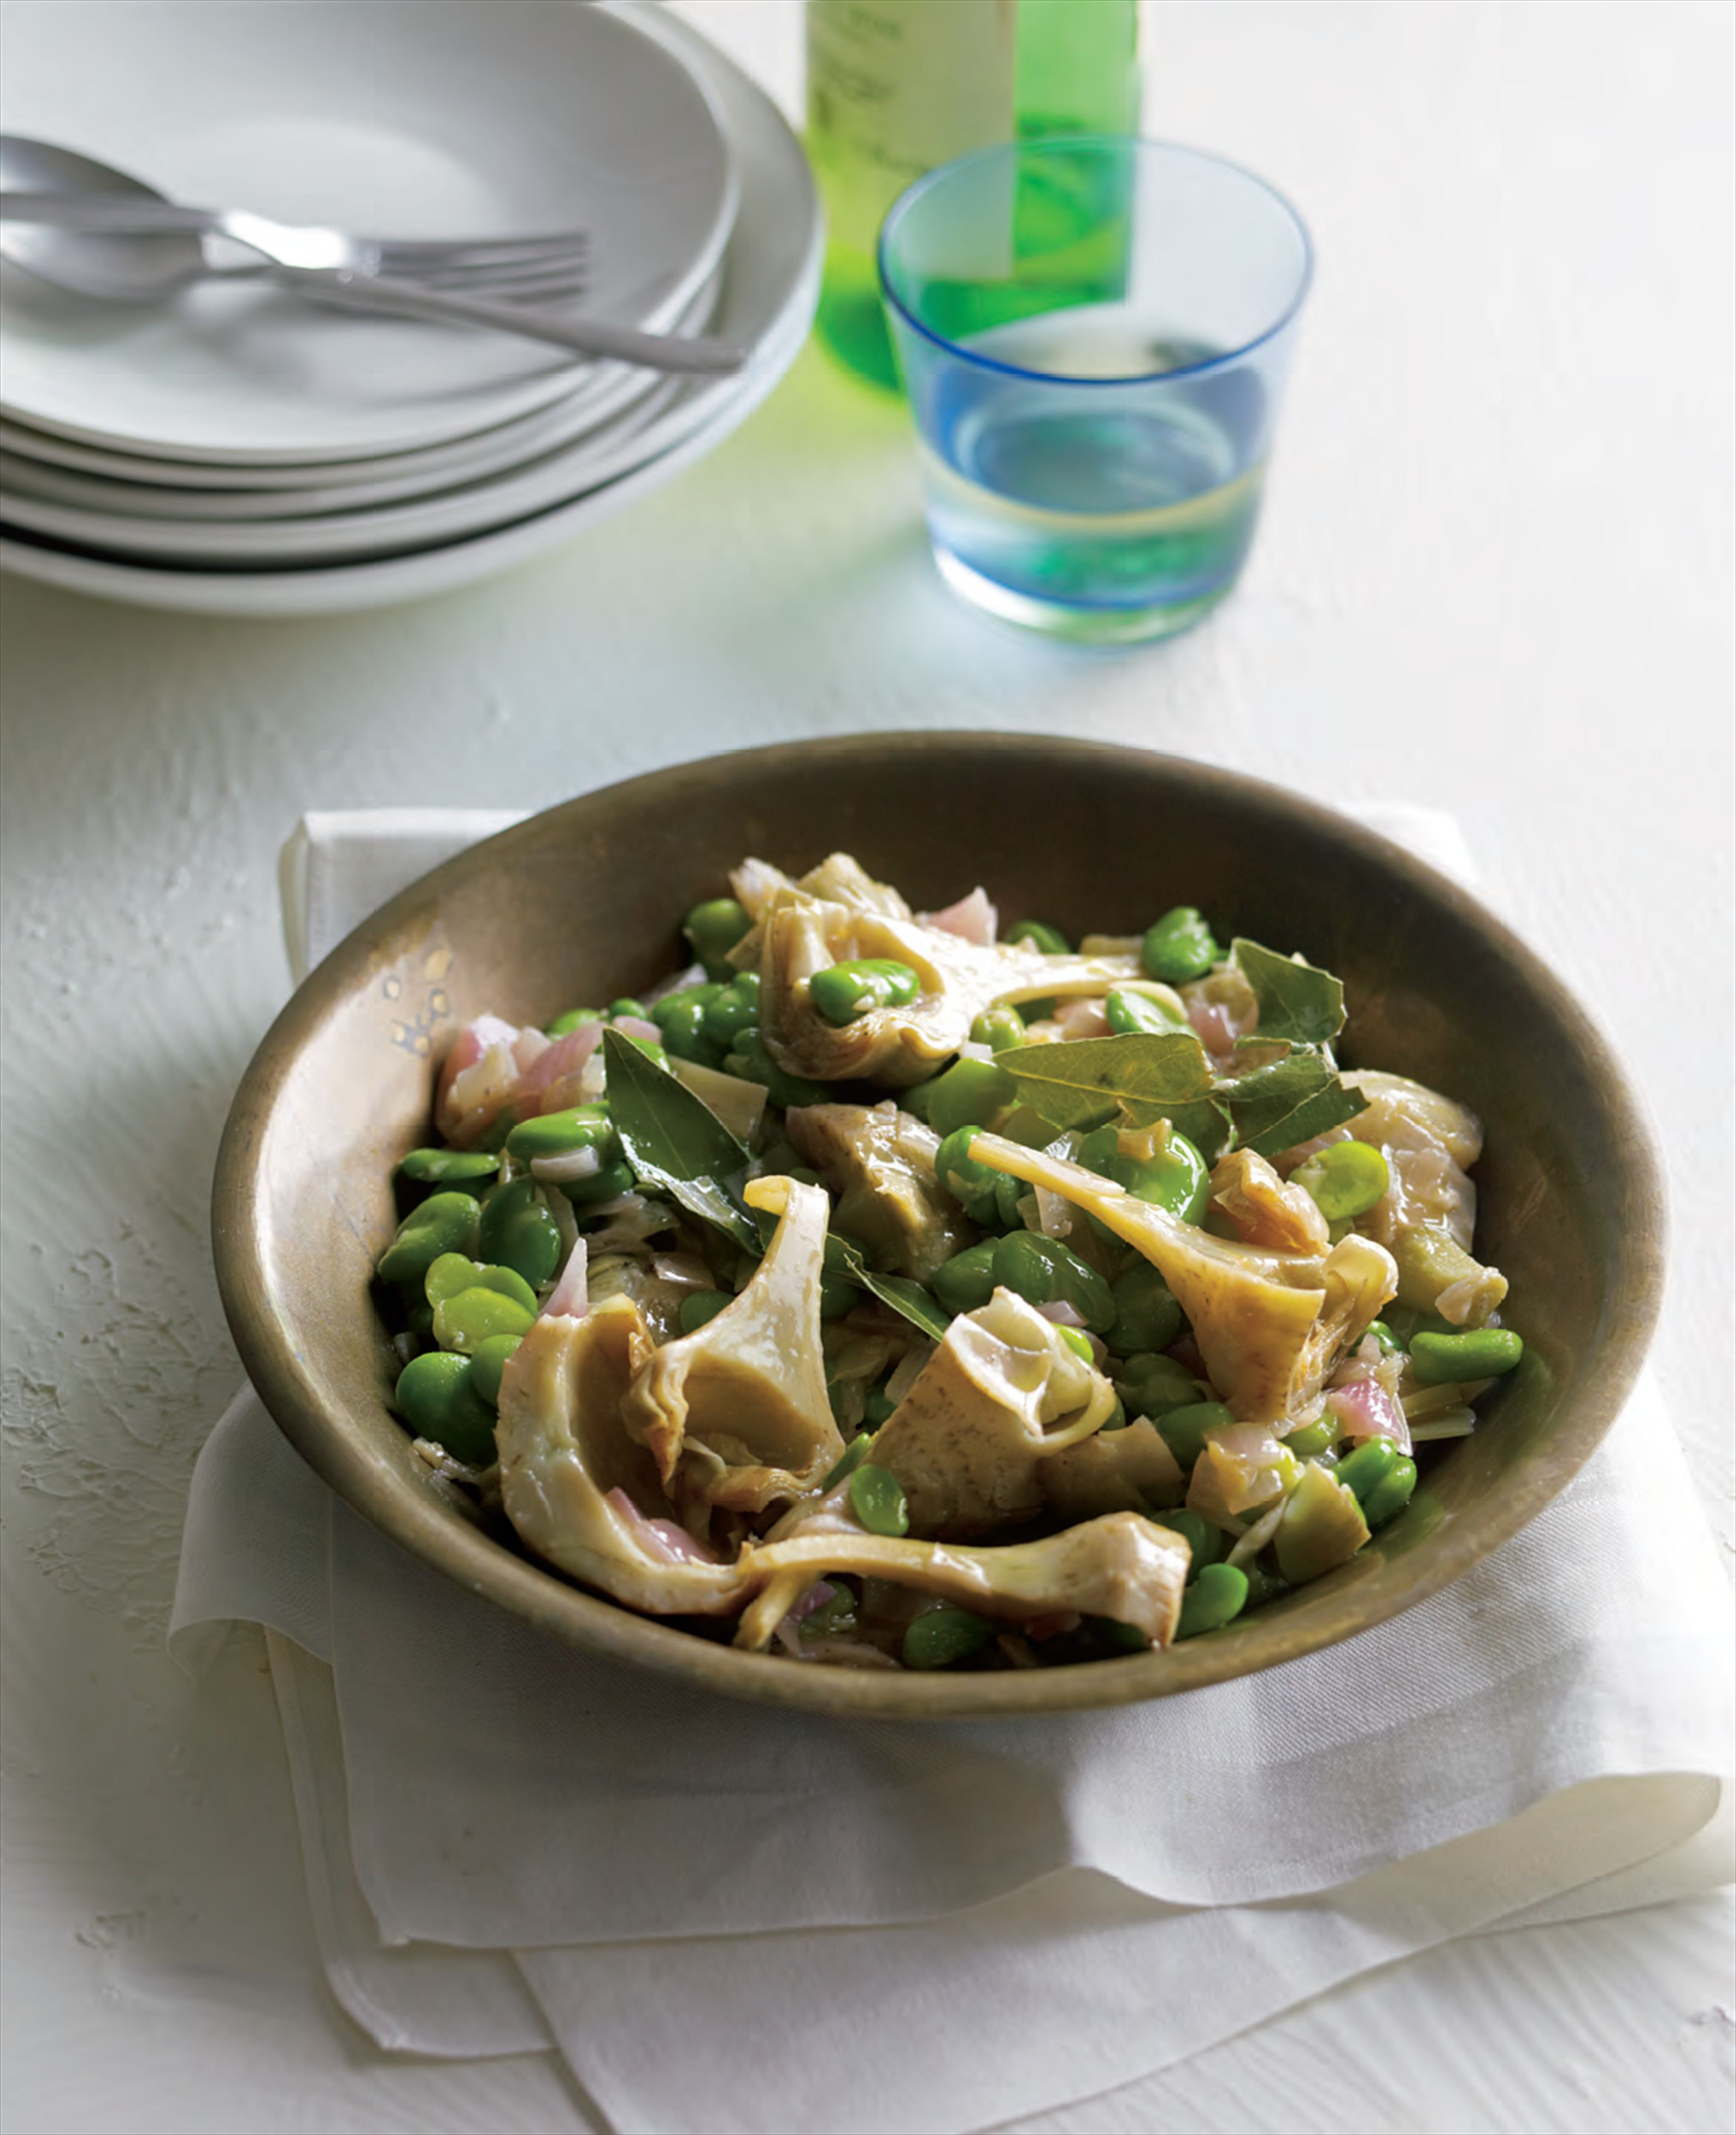 Artichokes with broad beans and lemon